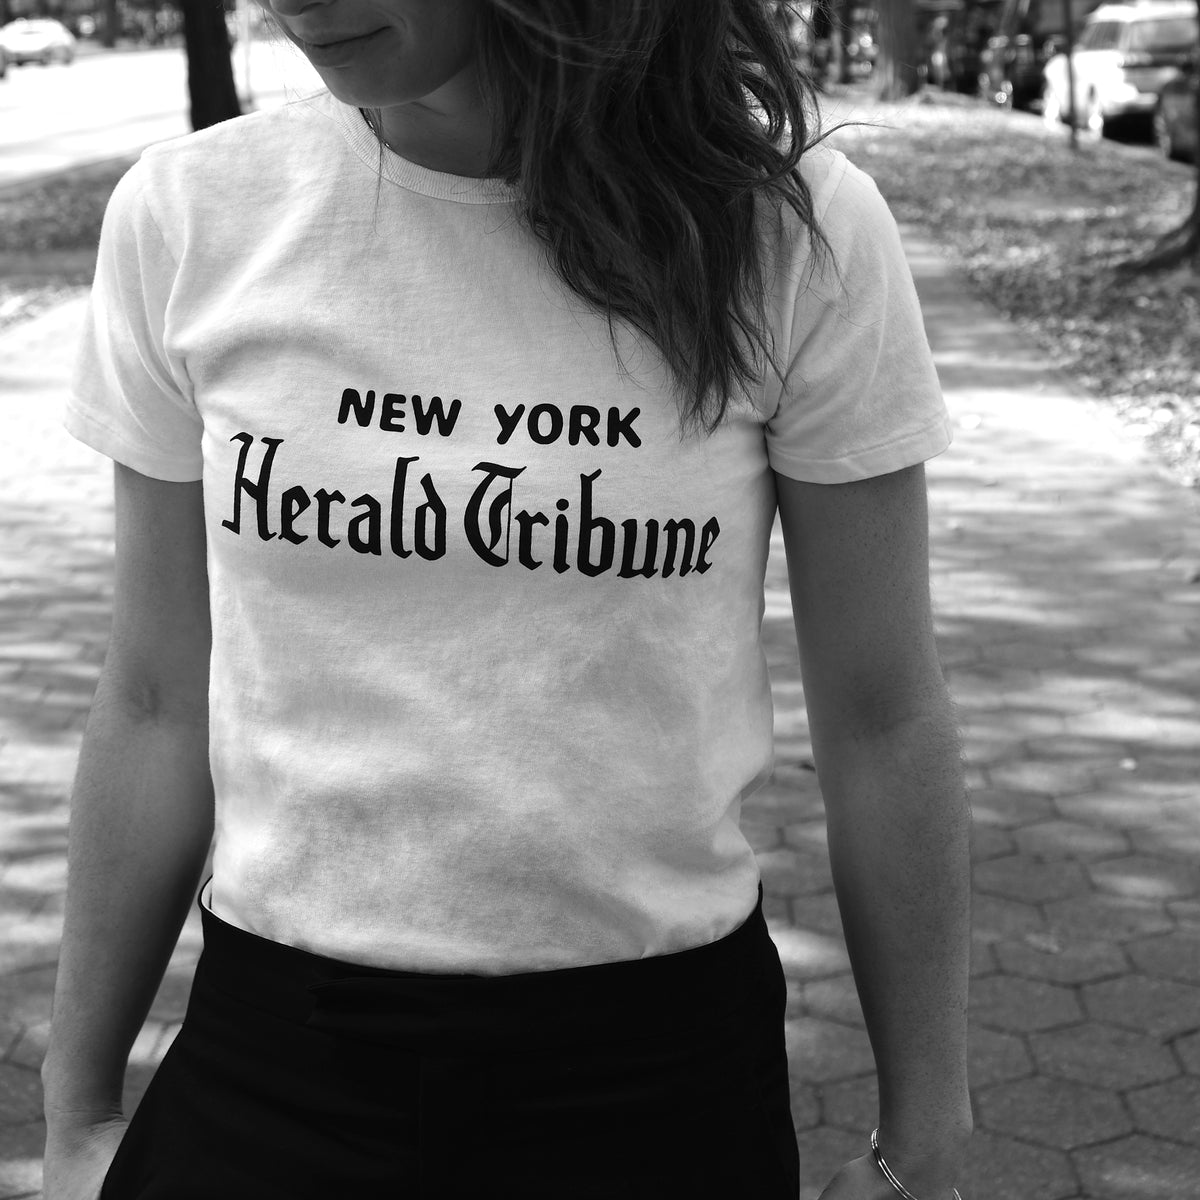 Herald Tribune Shirt